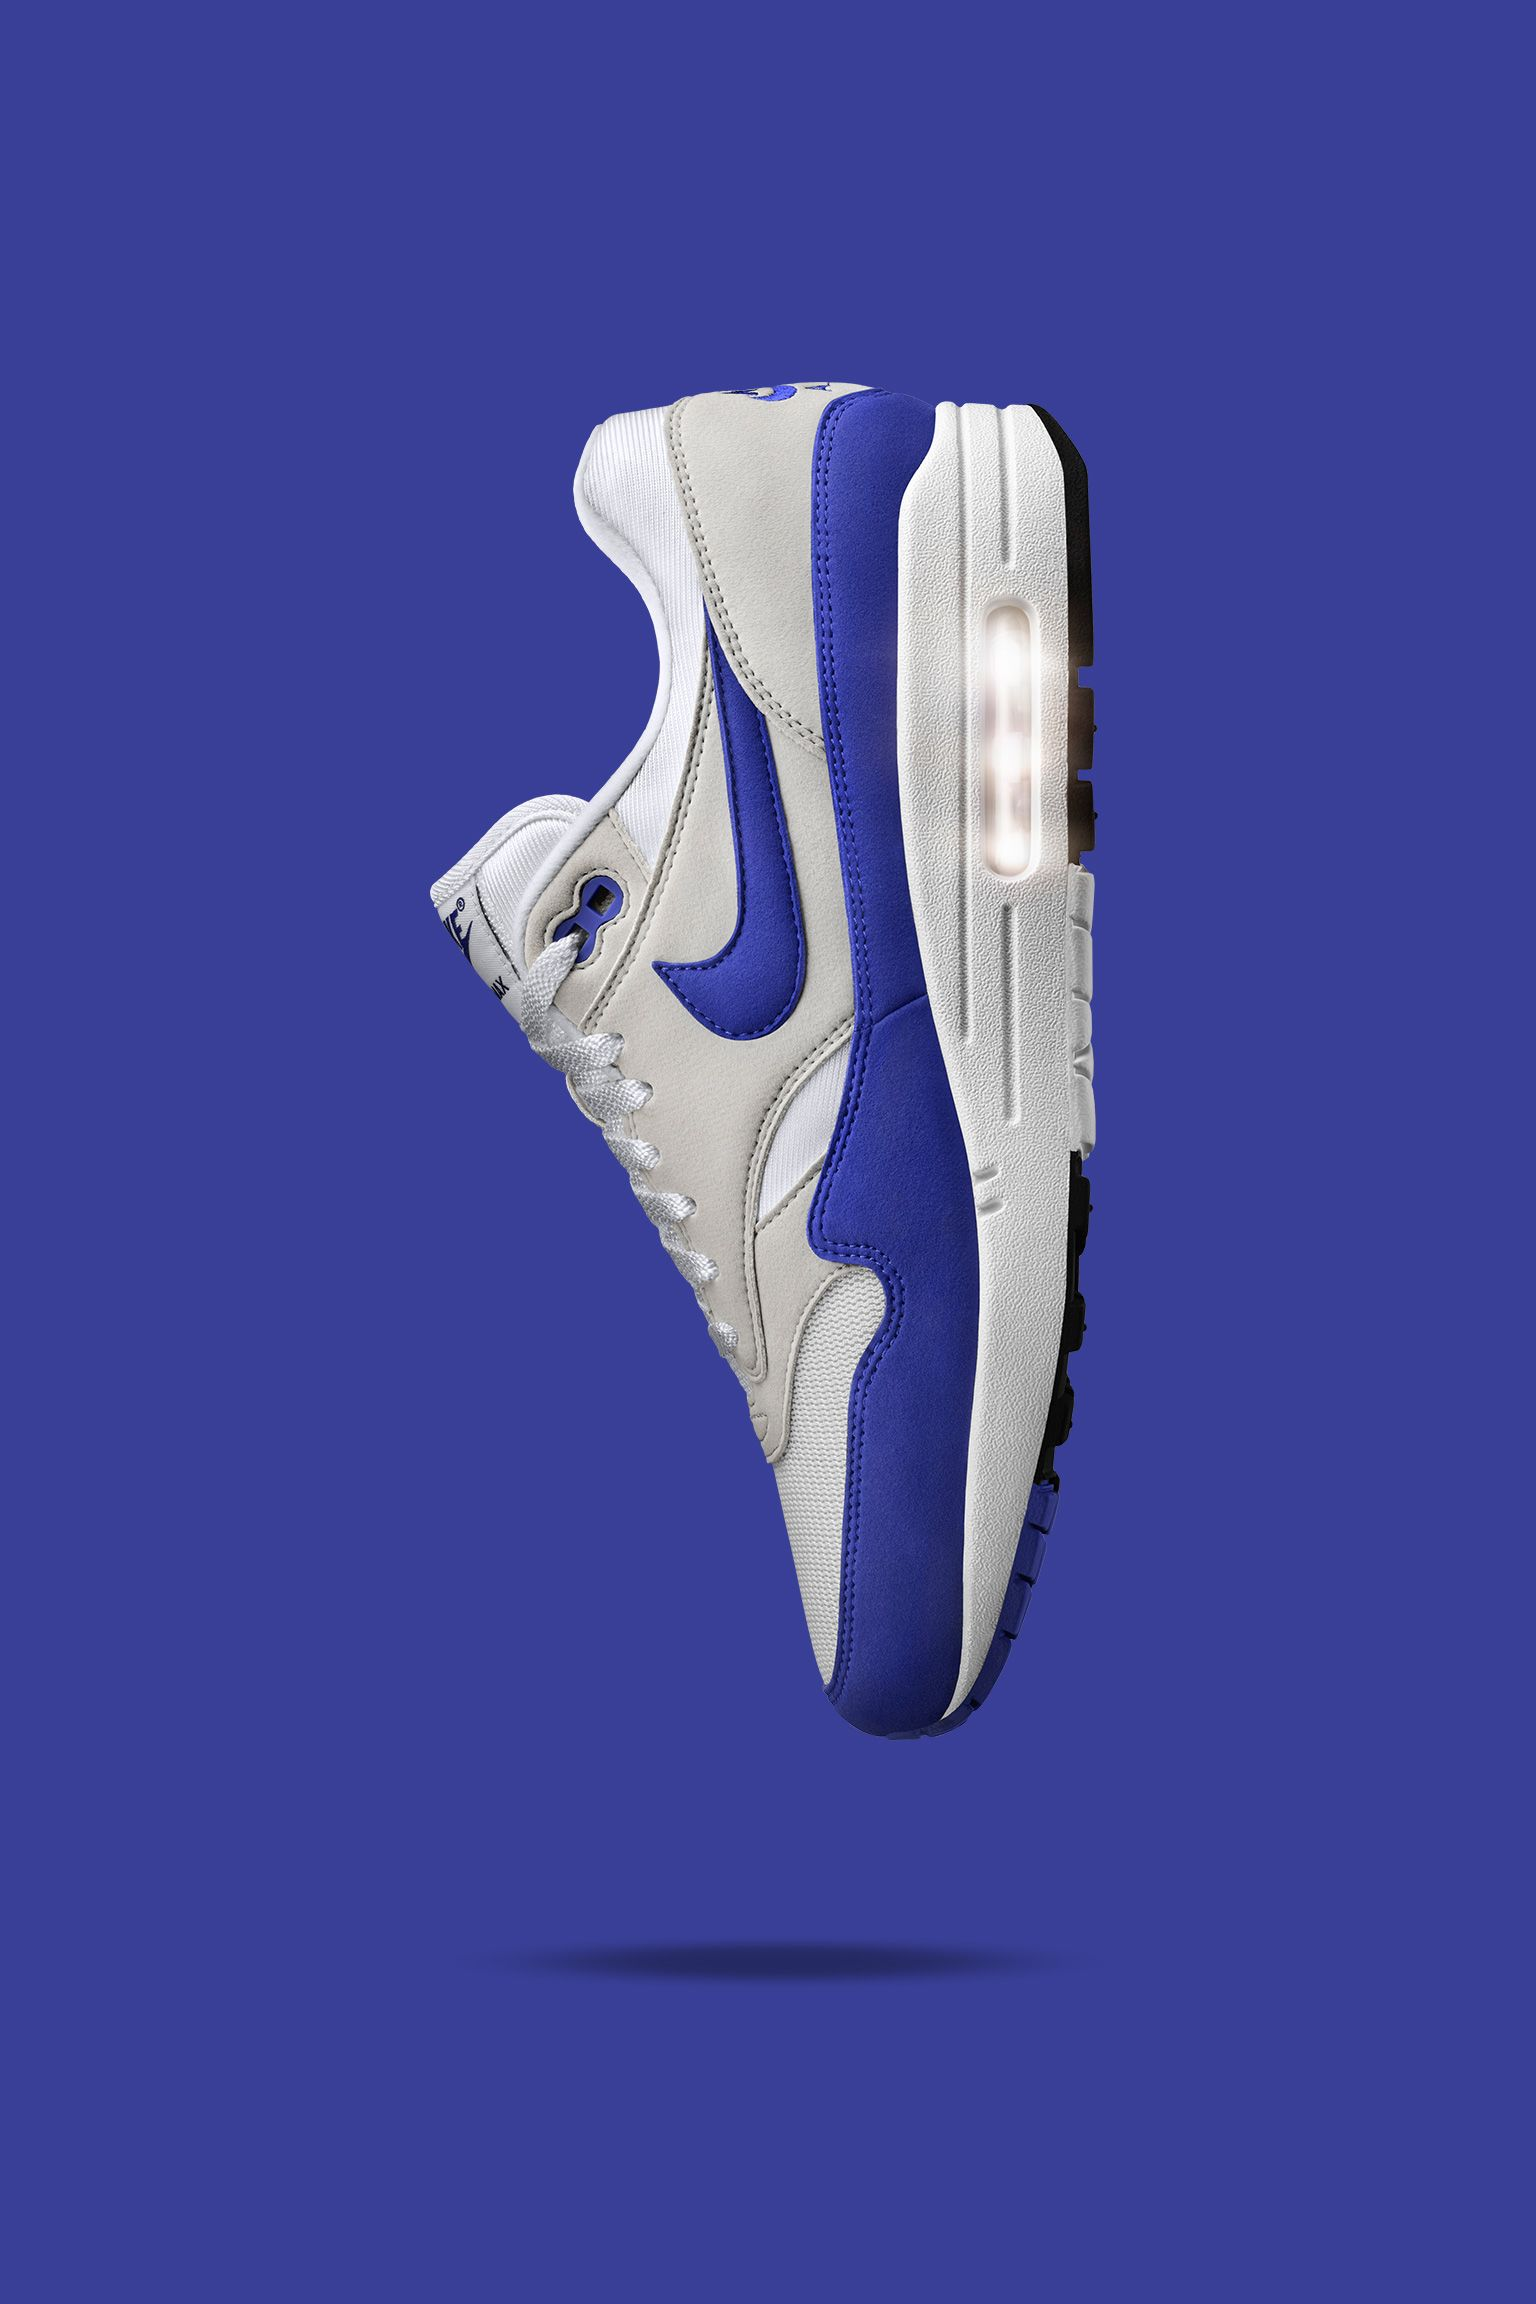 wholesale dealer f896b 865f0 ... cheapest air max 1 anniversary f73ab 0ce72 clearance nike air max 1  anniversary og japan sneakers in blue lyst e1a5e b29fa shopping obsidian ...